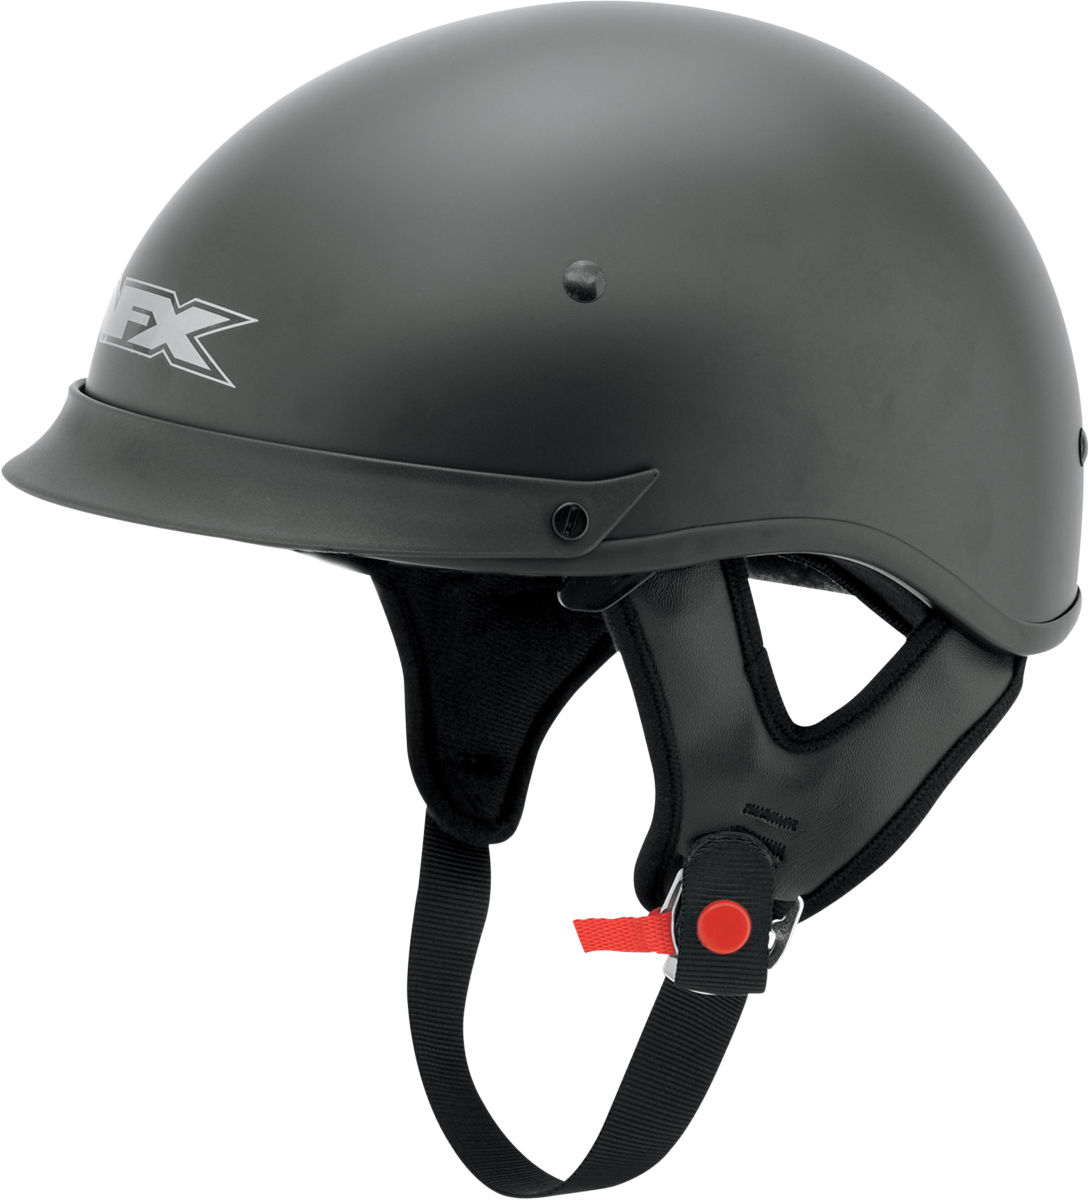 AFX FX72 Flat Large Black Motorcycle Riding Half Helmet & Visor